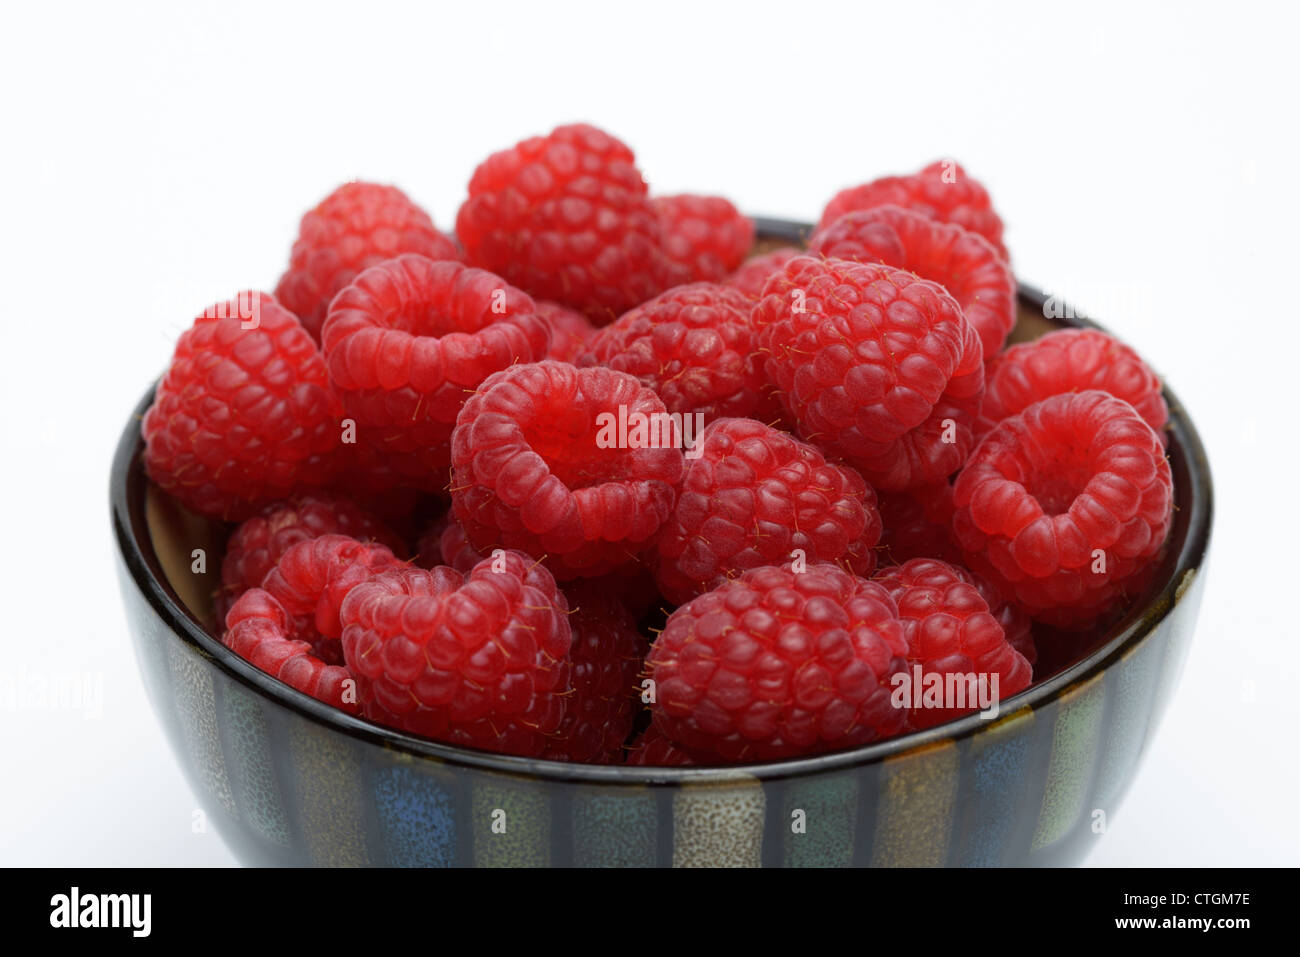 Fresh raspberries in a bowl, close-up - Stock Image